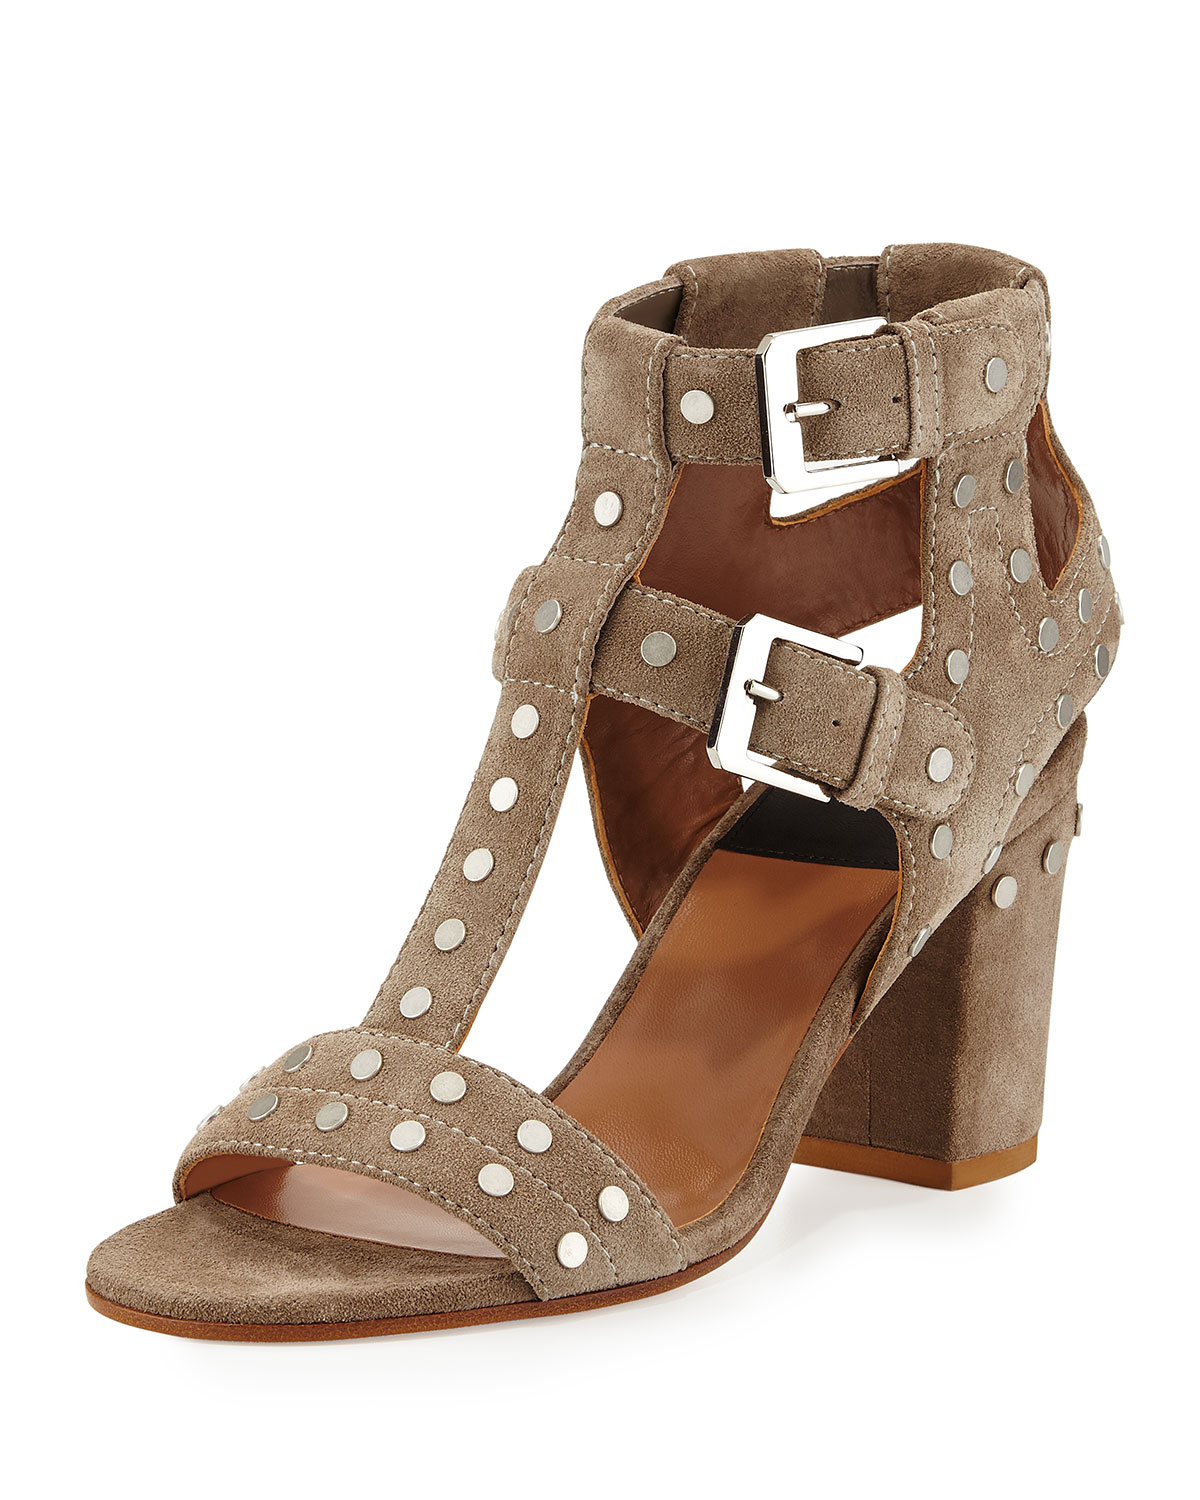 enjoy shopping Laurence Dacade double buckle sandals where to buy cheap real with credit card xroHqH